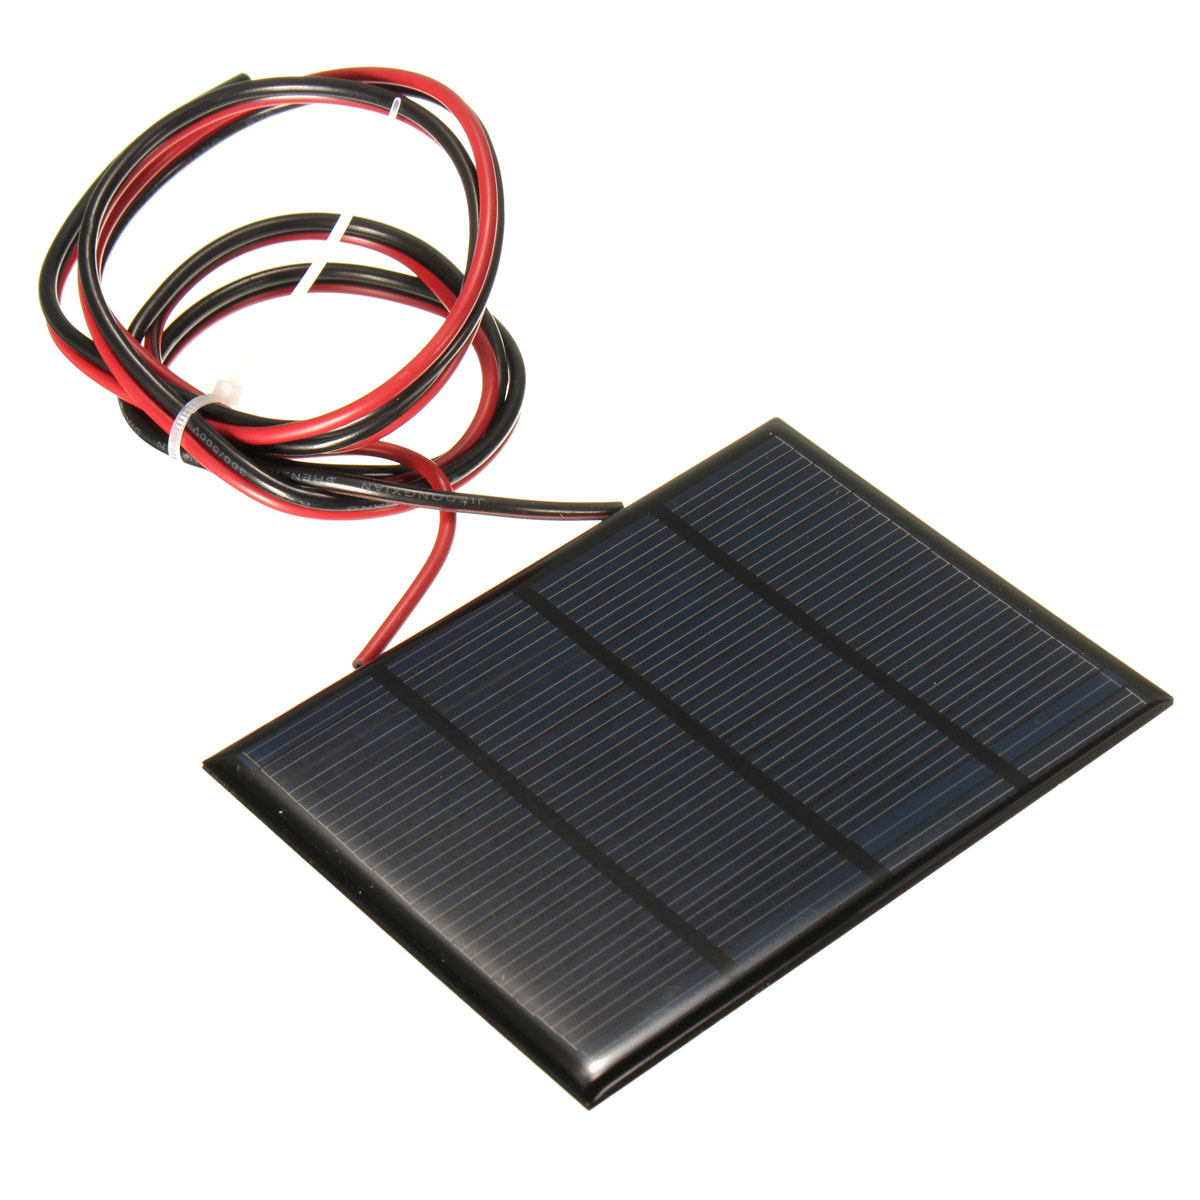 hot sale 12v 1 5w 100mah polycrystalline silicon solar panel pv module mini solar cells battery. Black Bedroom Furniture Sets. Home Design Ideas